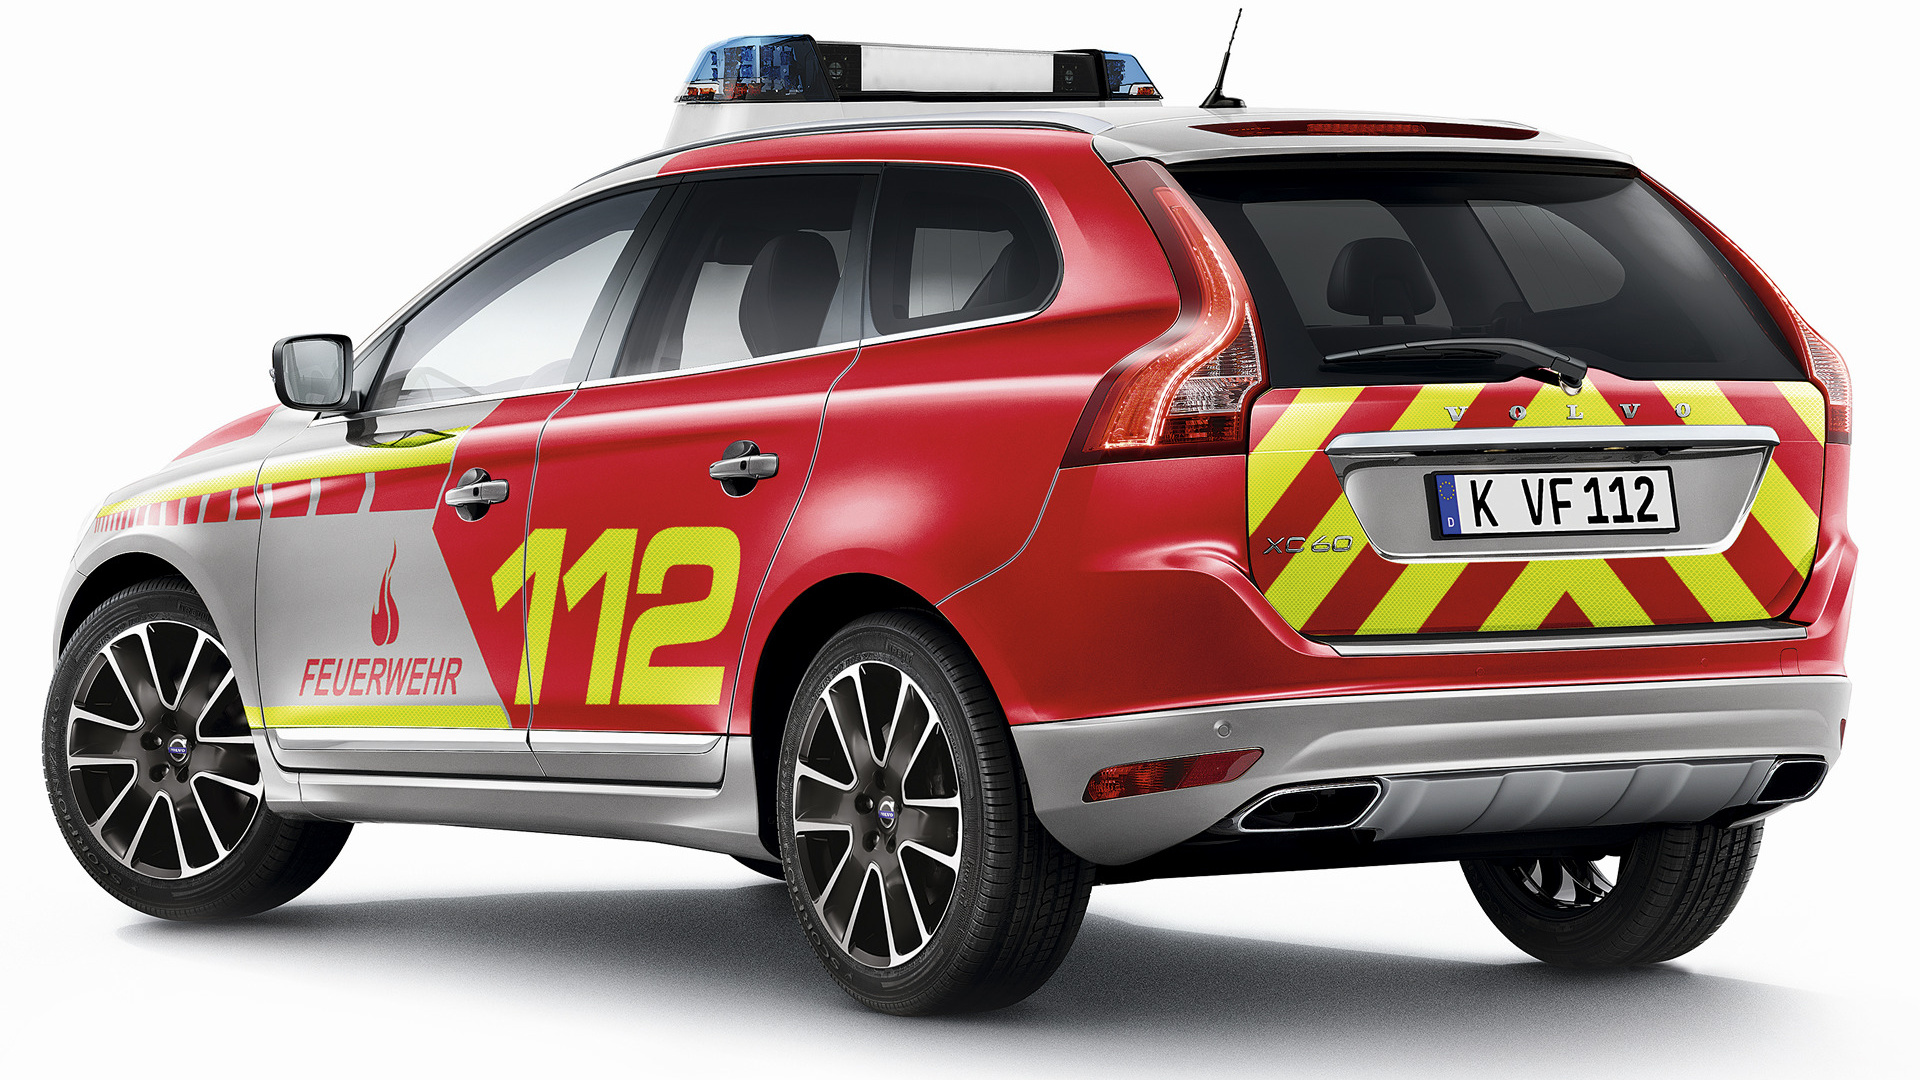 Volvo XC60 Feuerwehr 2014 Wallpapers and HD Images 1920x1080